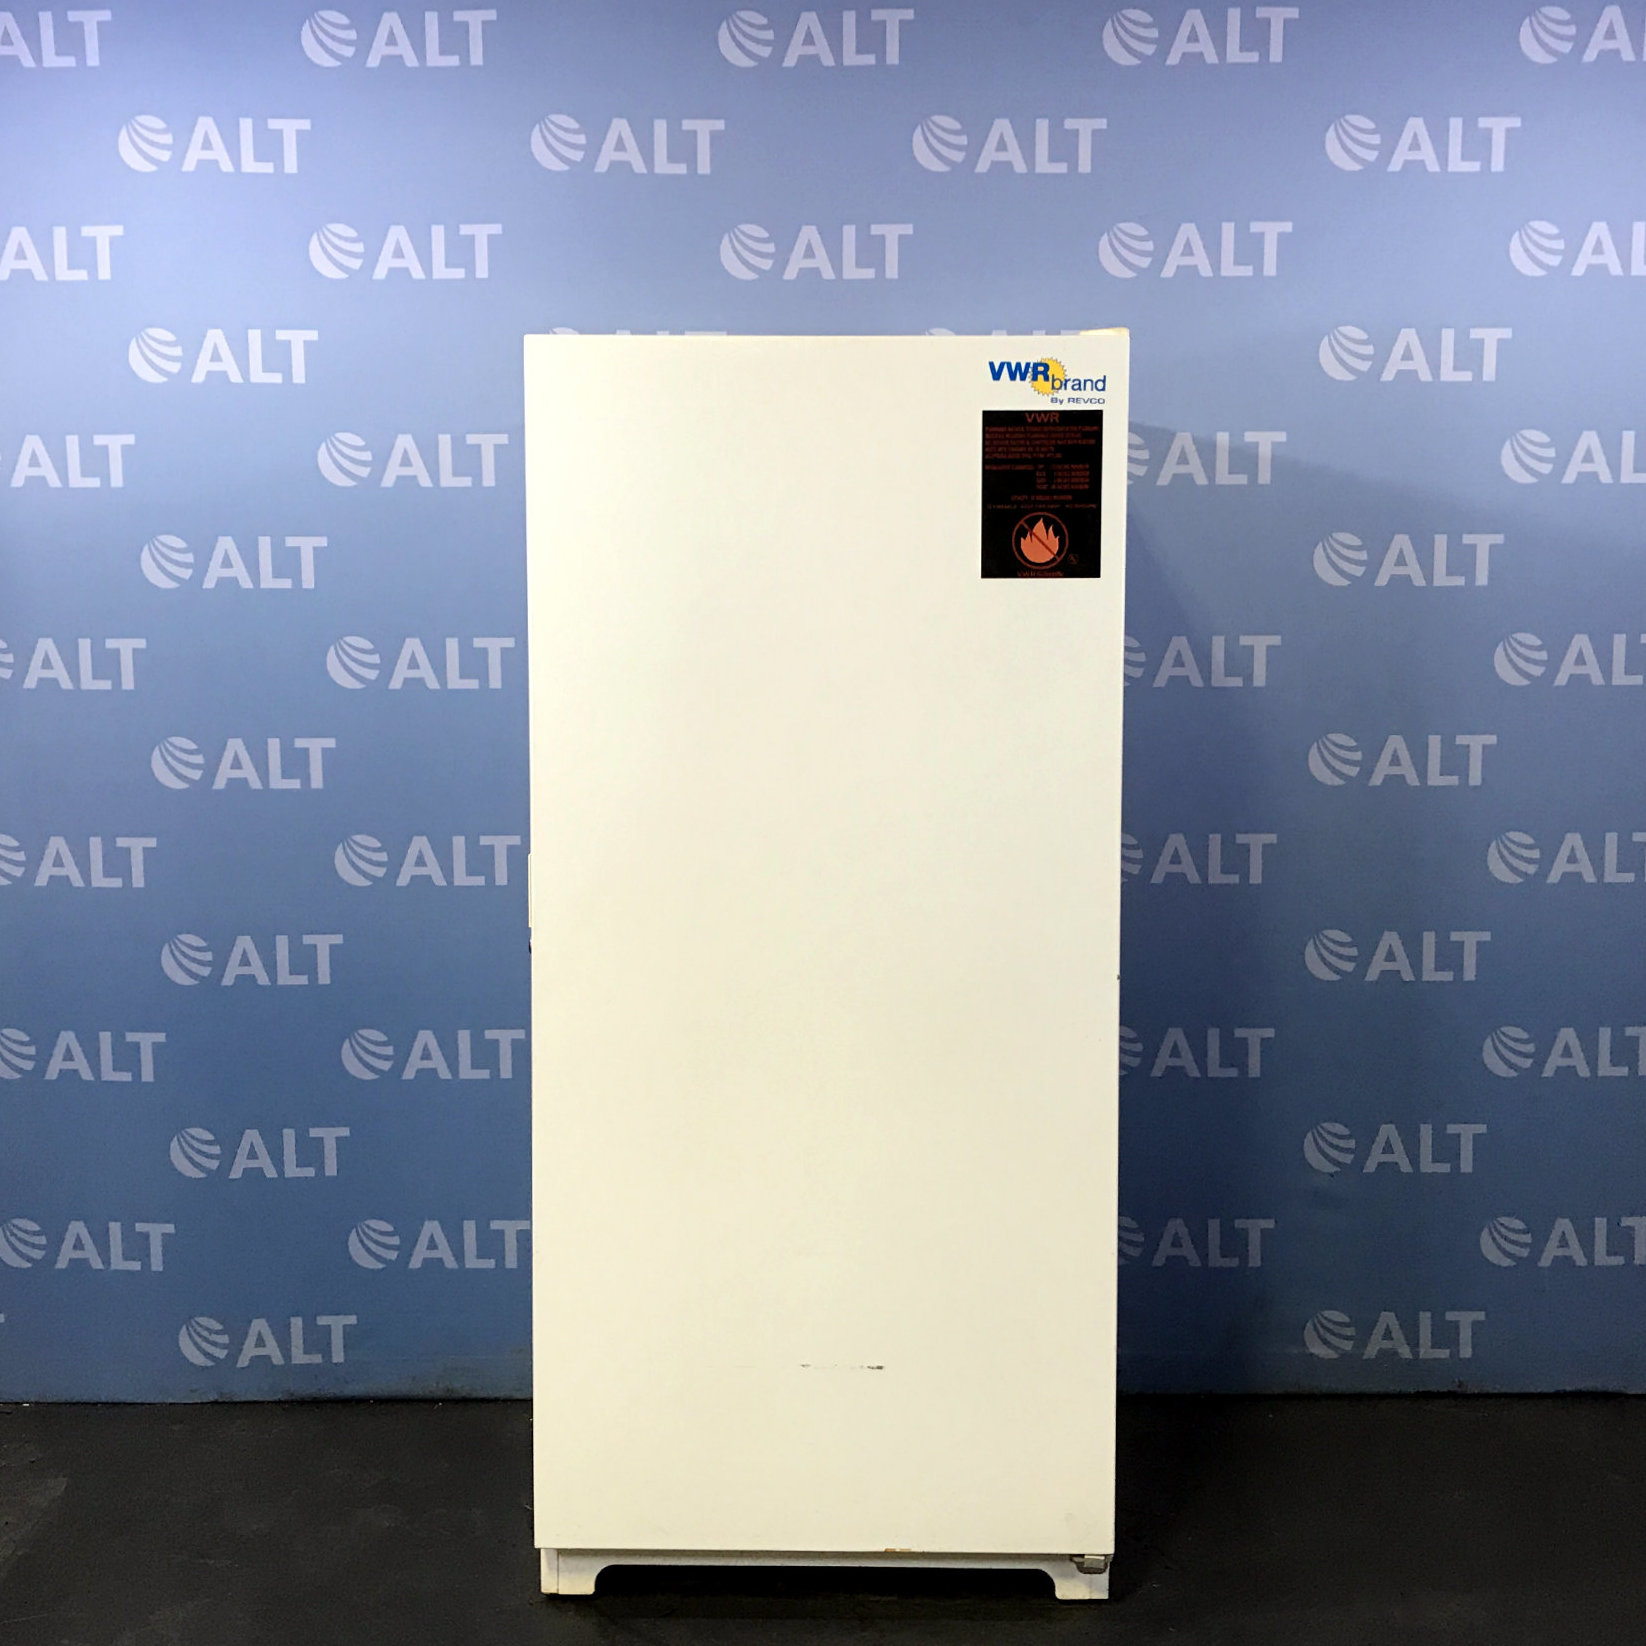 VWR R421FA14 -20 Flammable Storage Freezer  Image